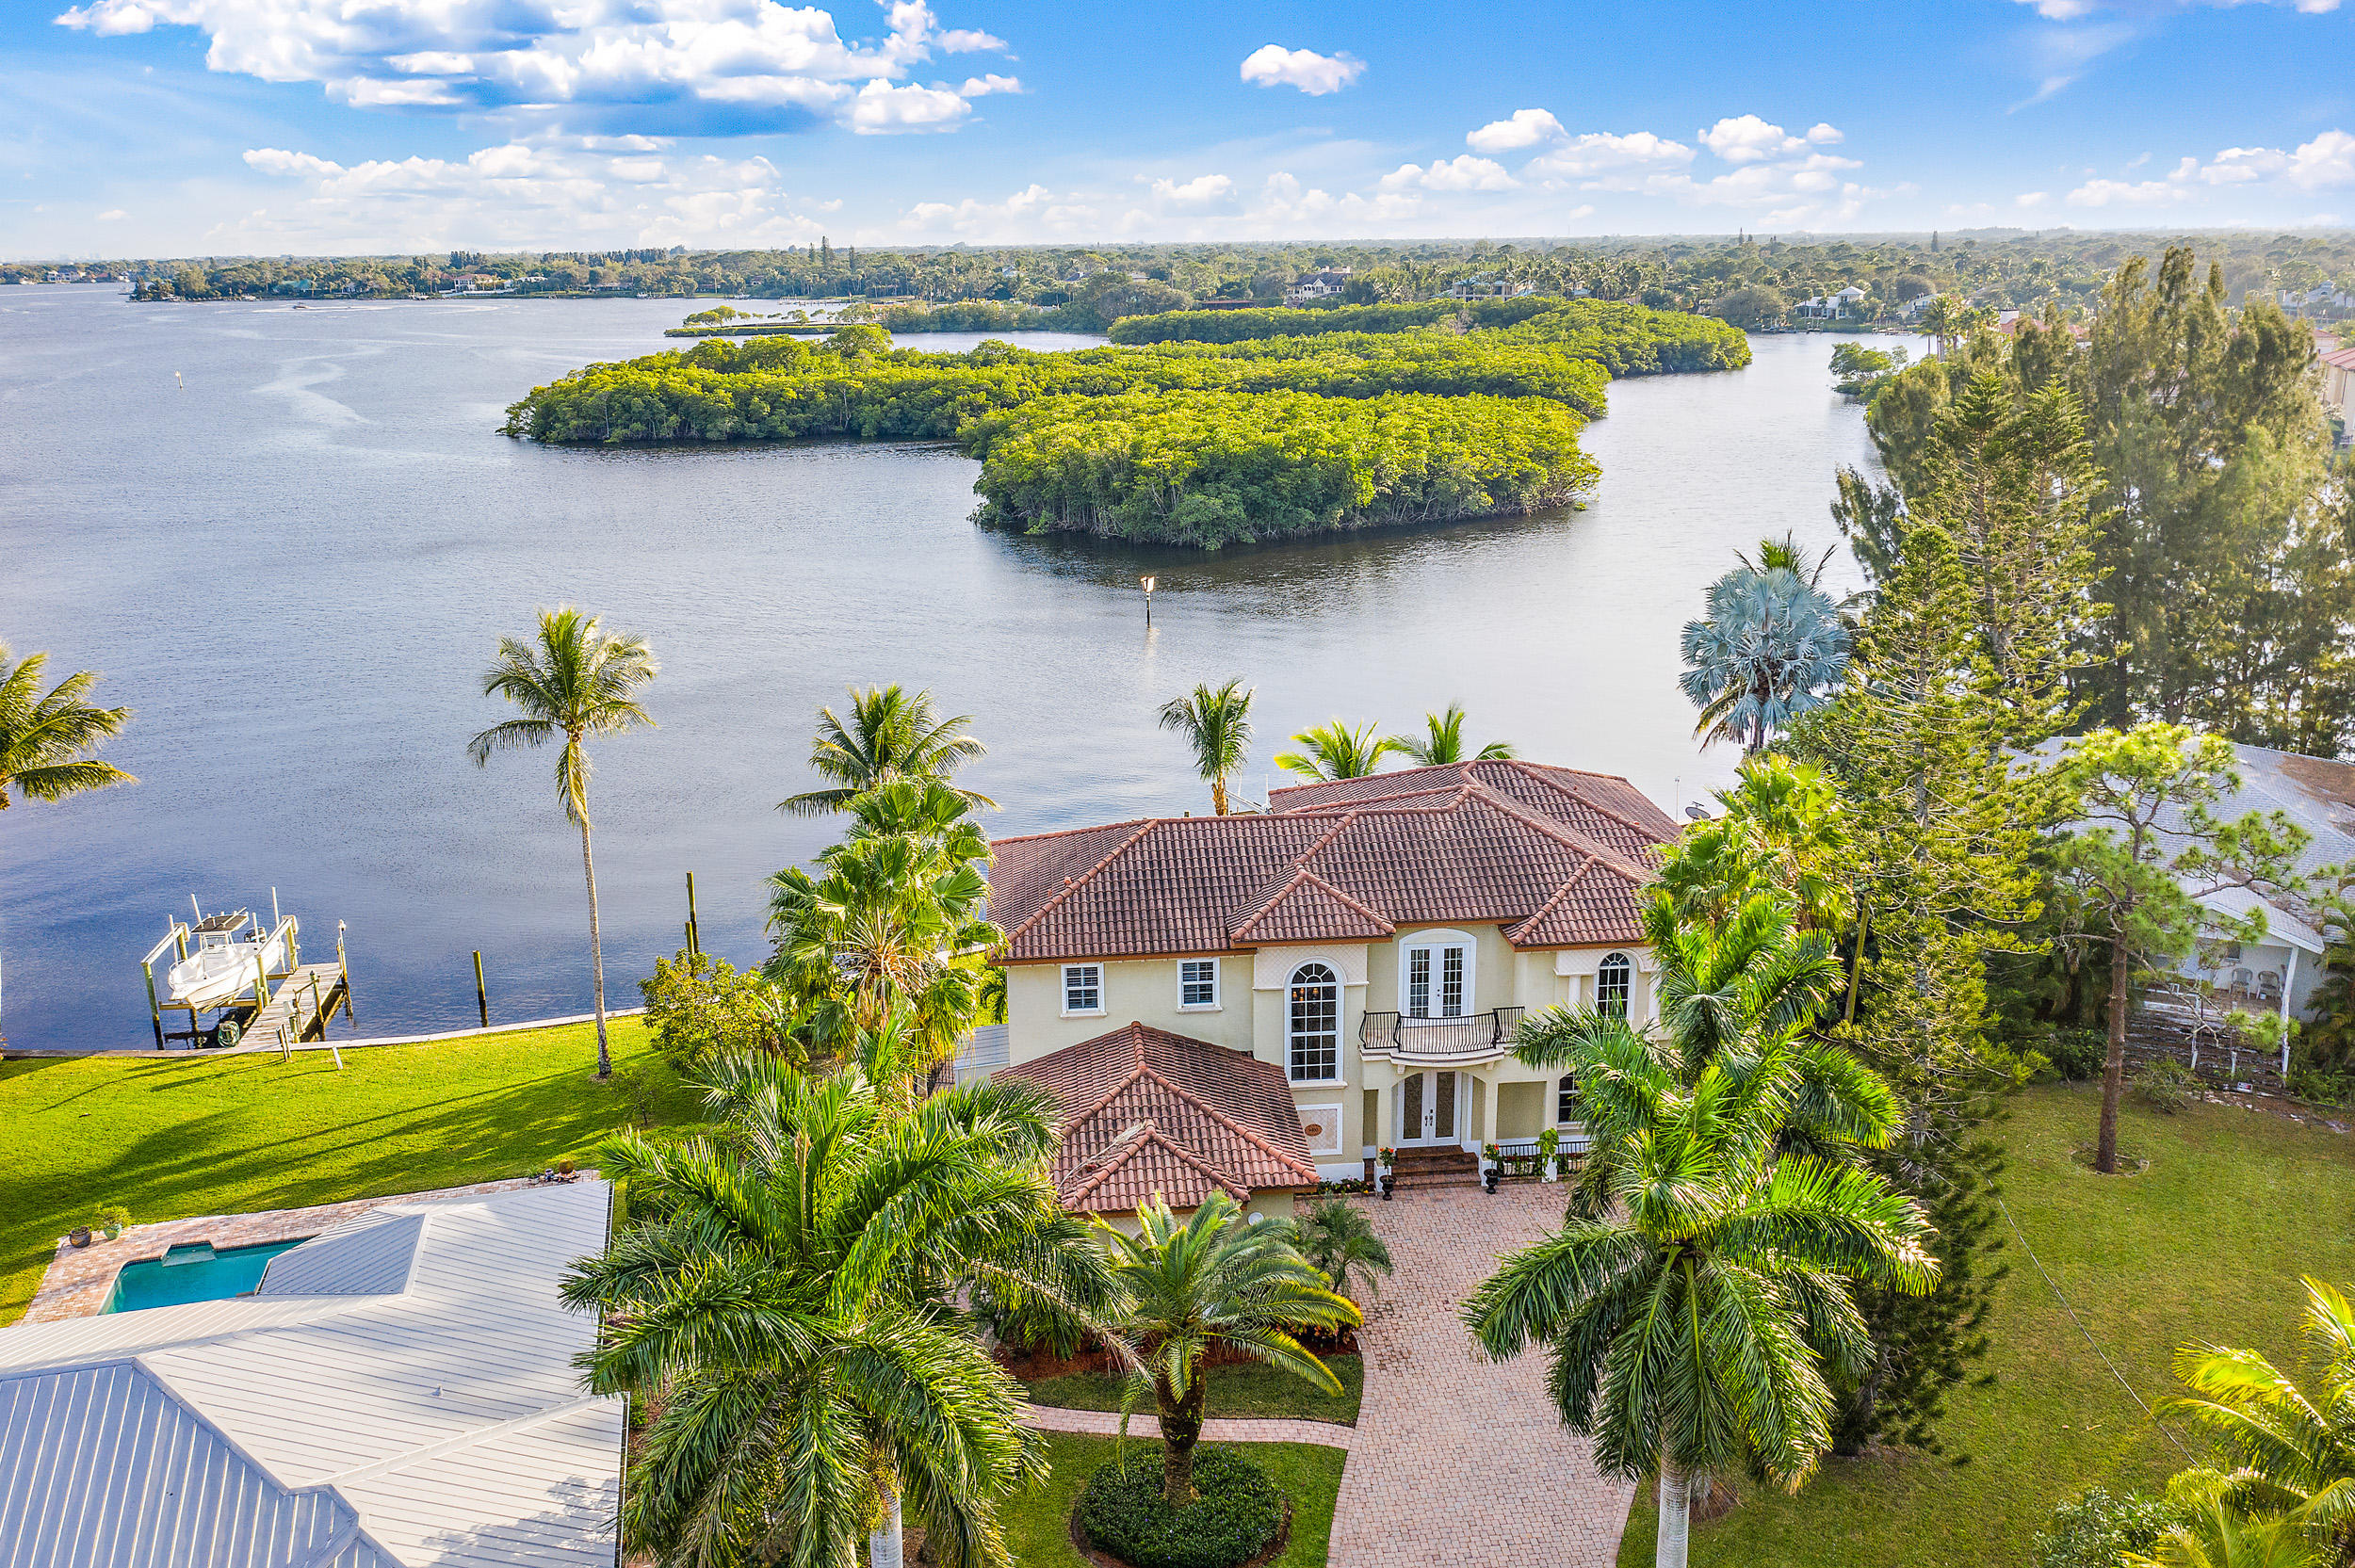 Home for sale in Cove Point Tequesta Florida